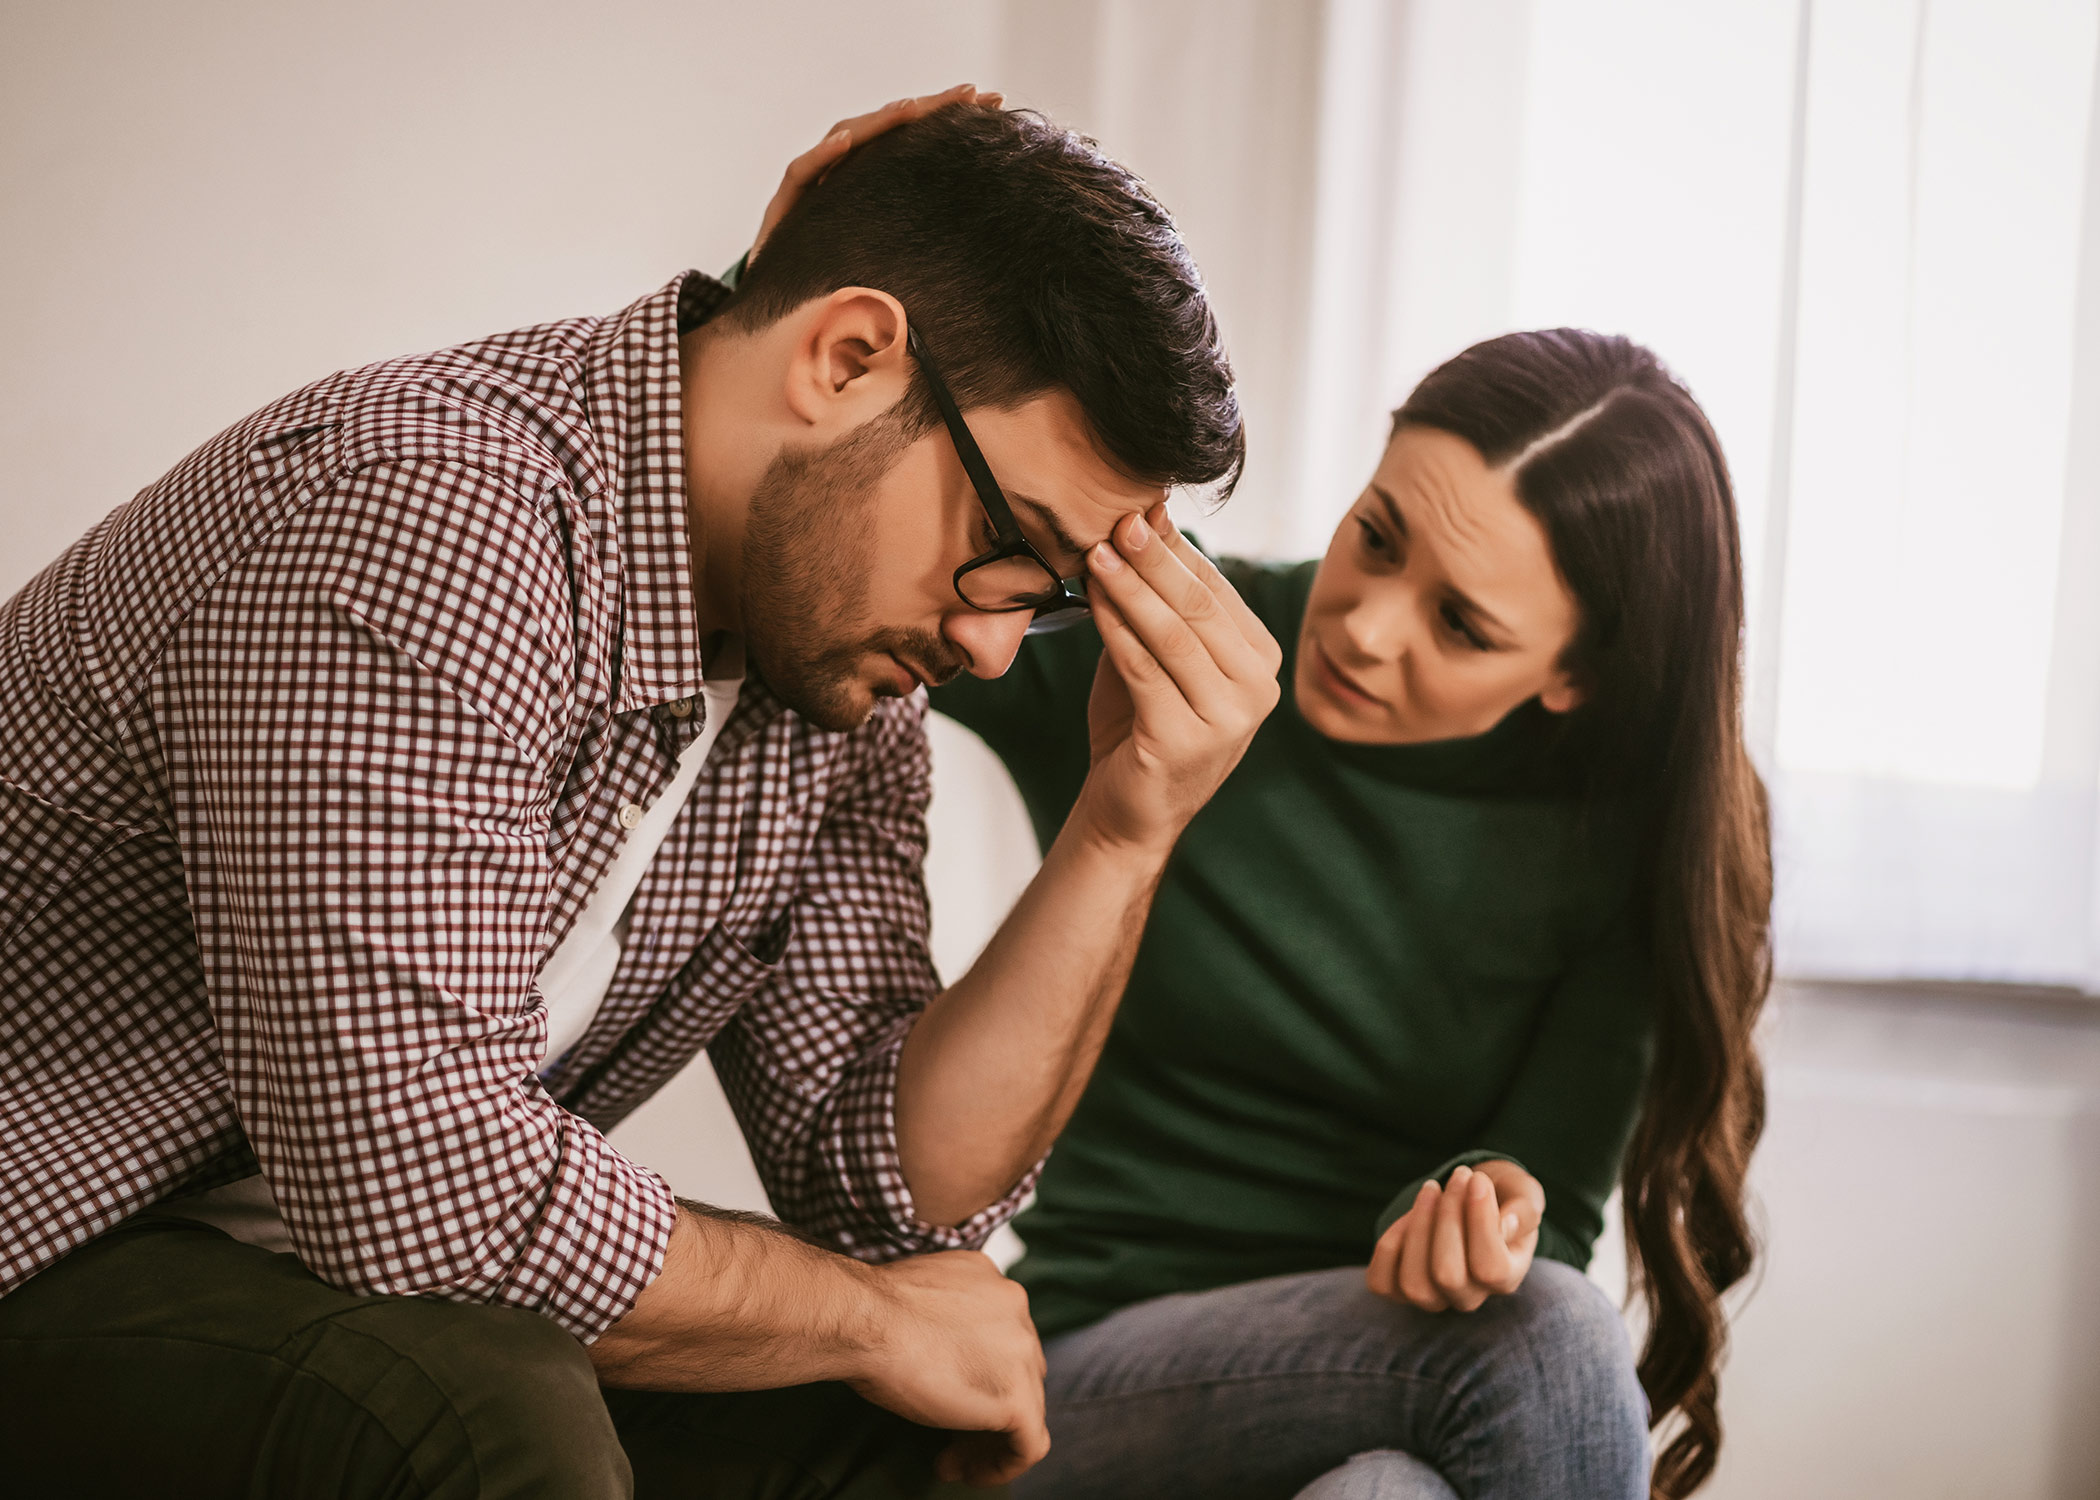 Man has mental health issues, his wife is consoling him.